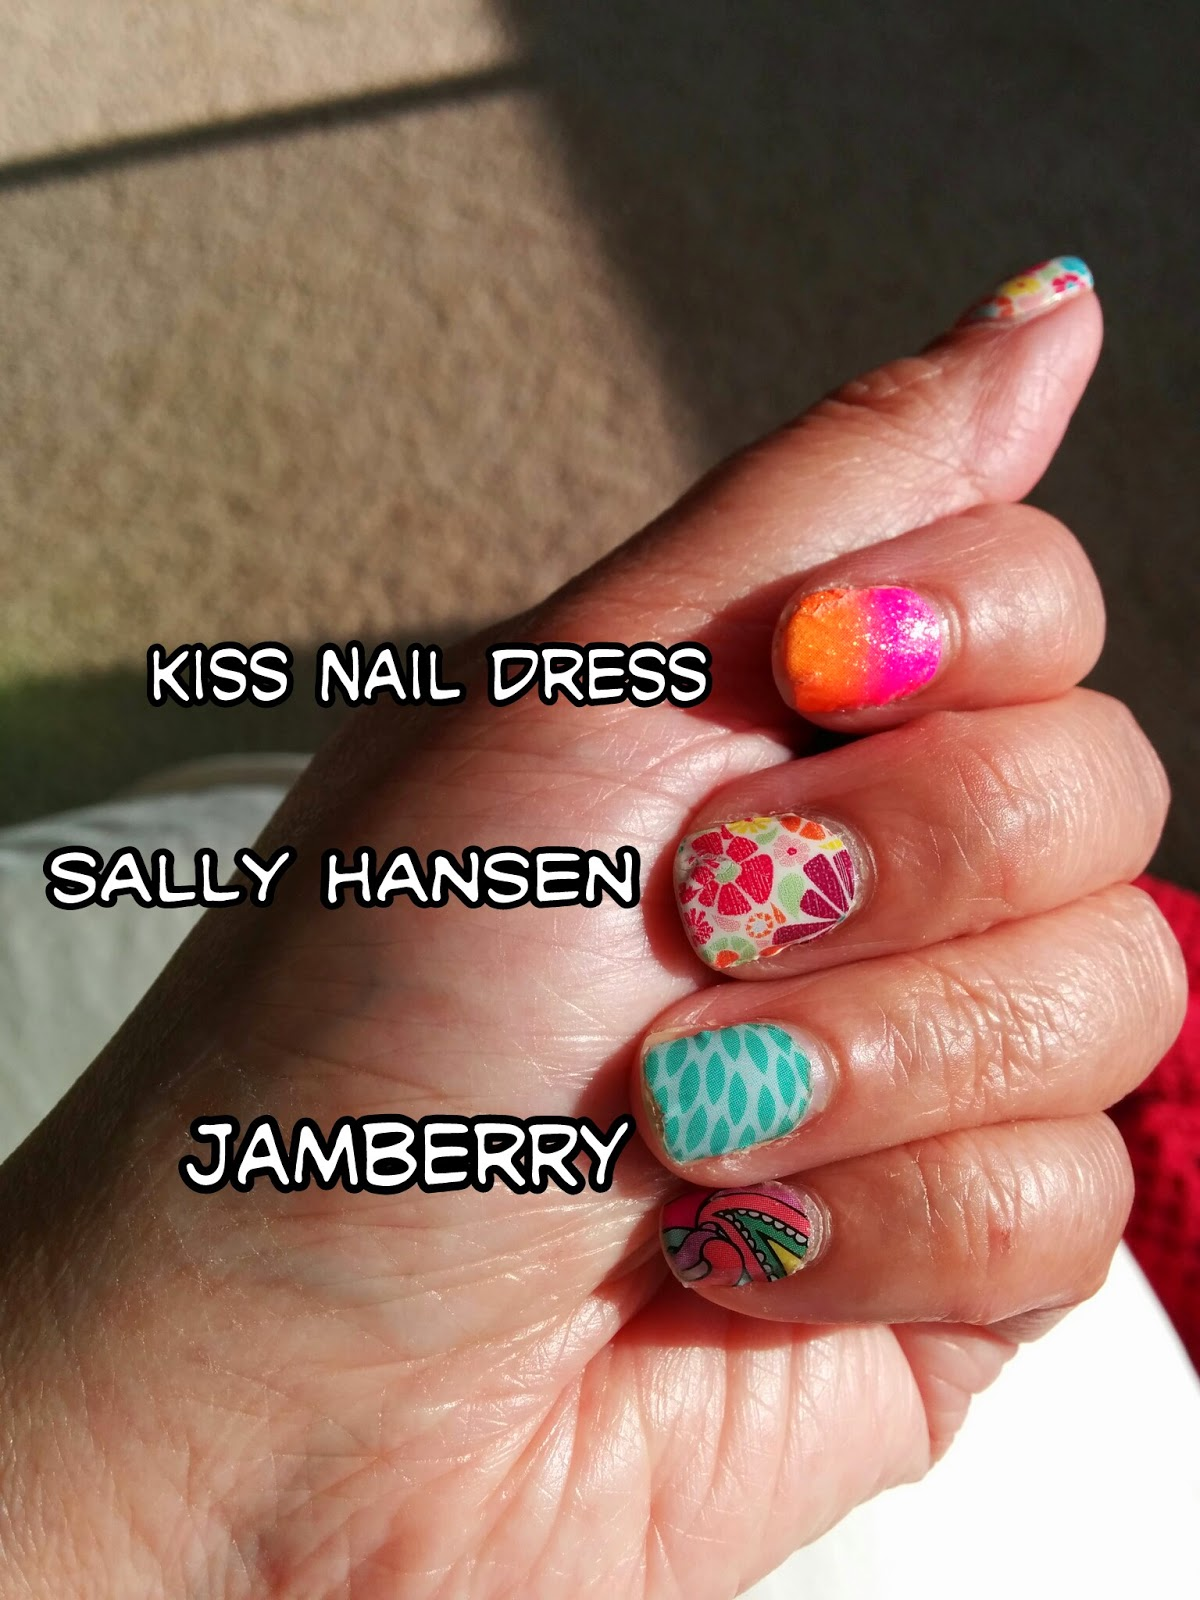 Bird\'s Nest Beauty: NAIL WRAP MANIA - Jamberry vs Kiss Nail Dress vs ...